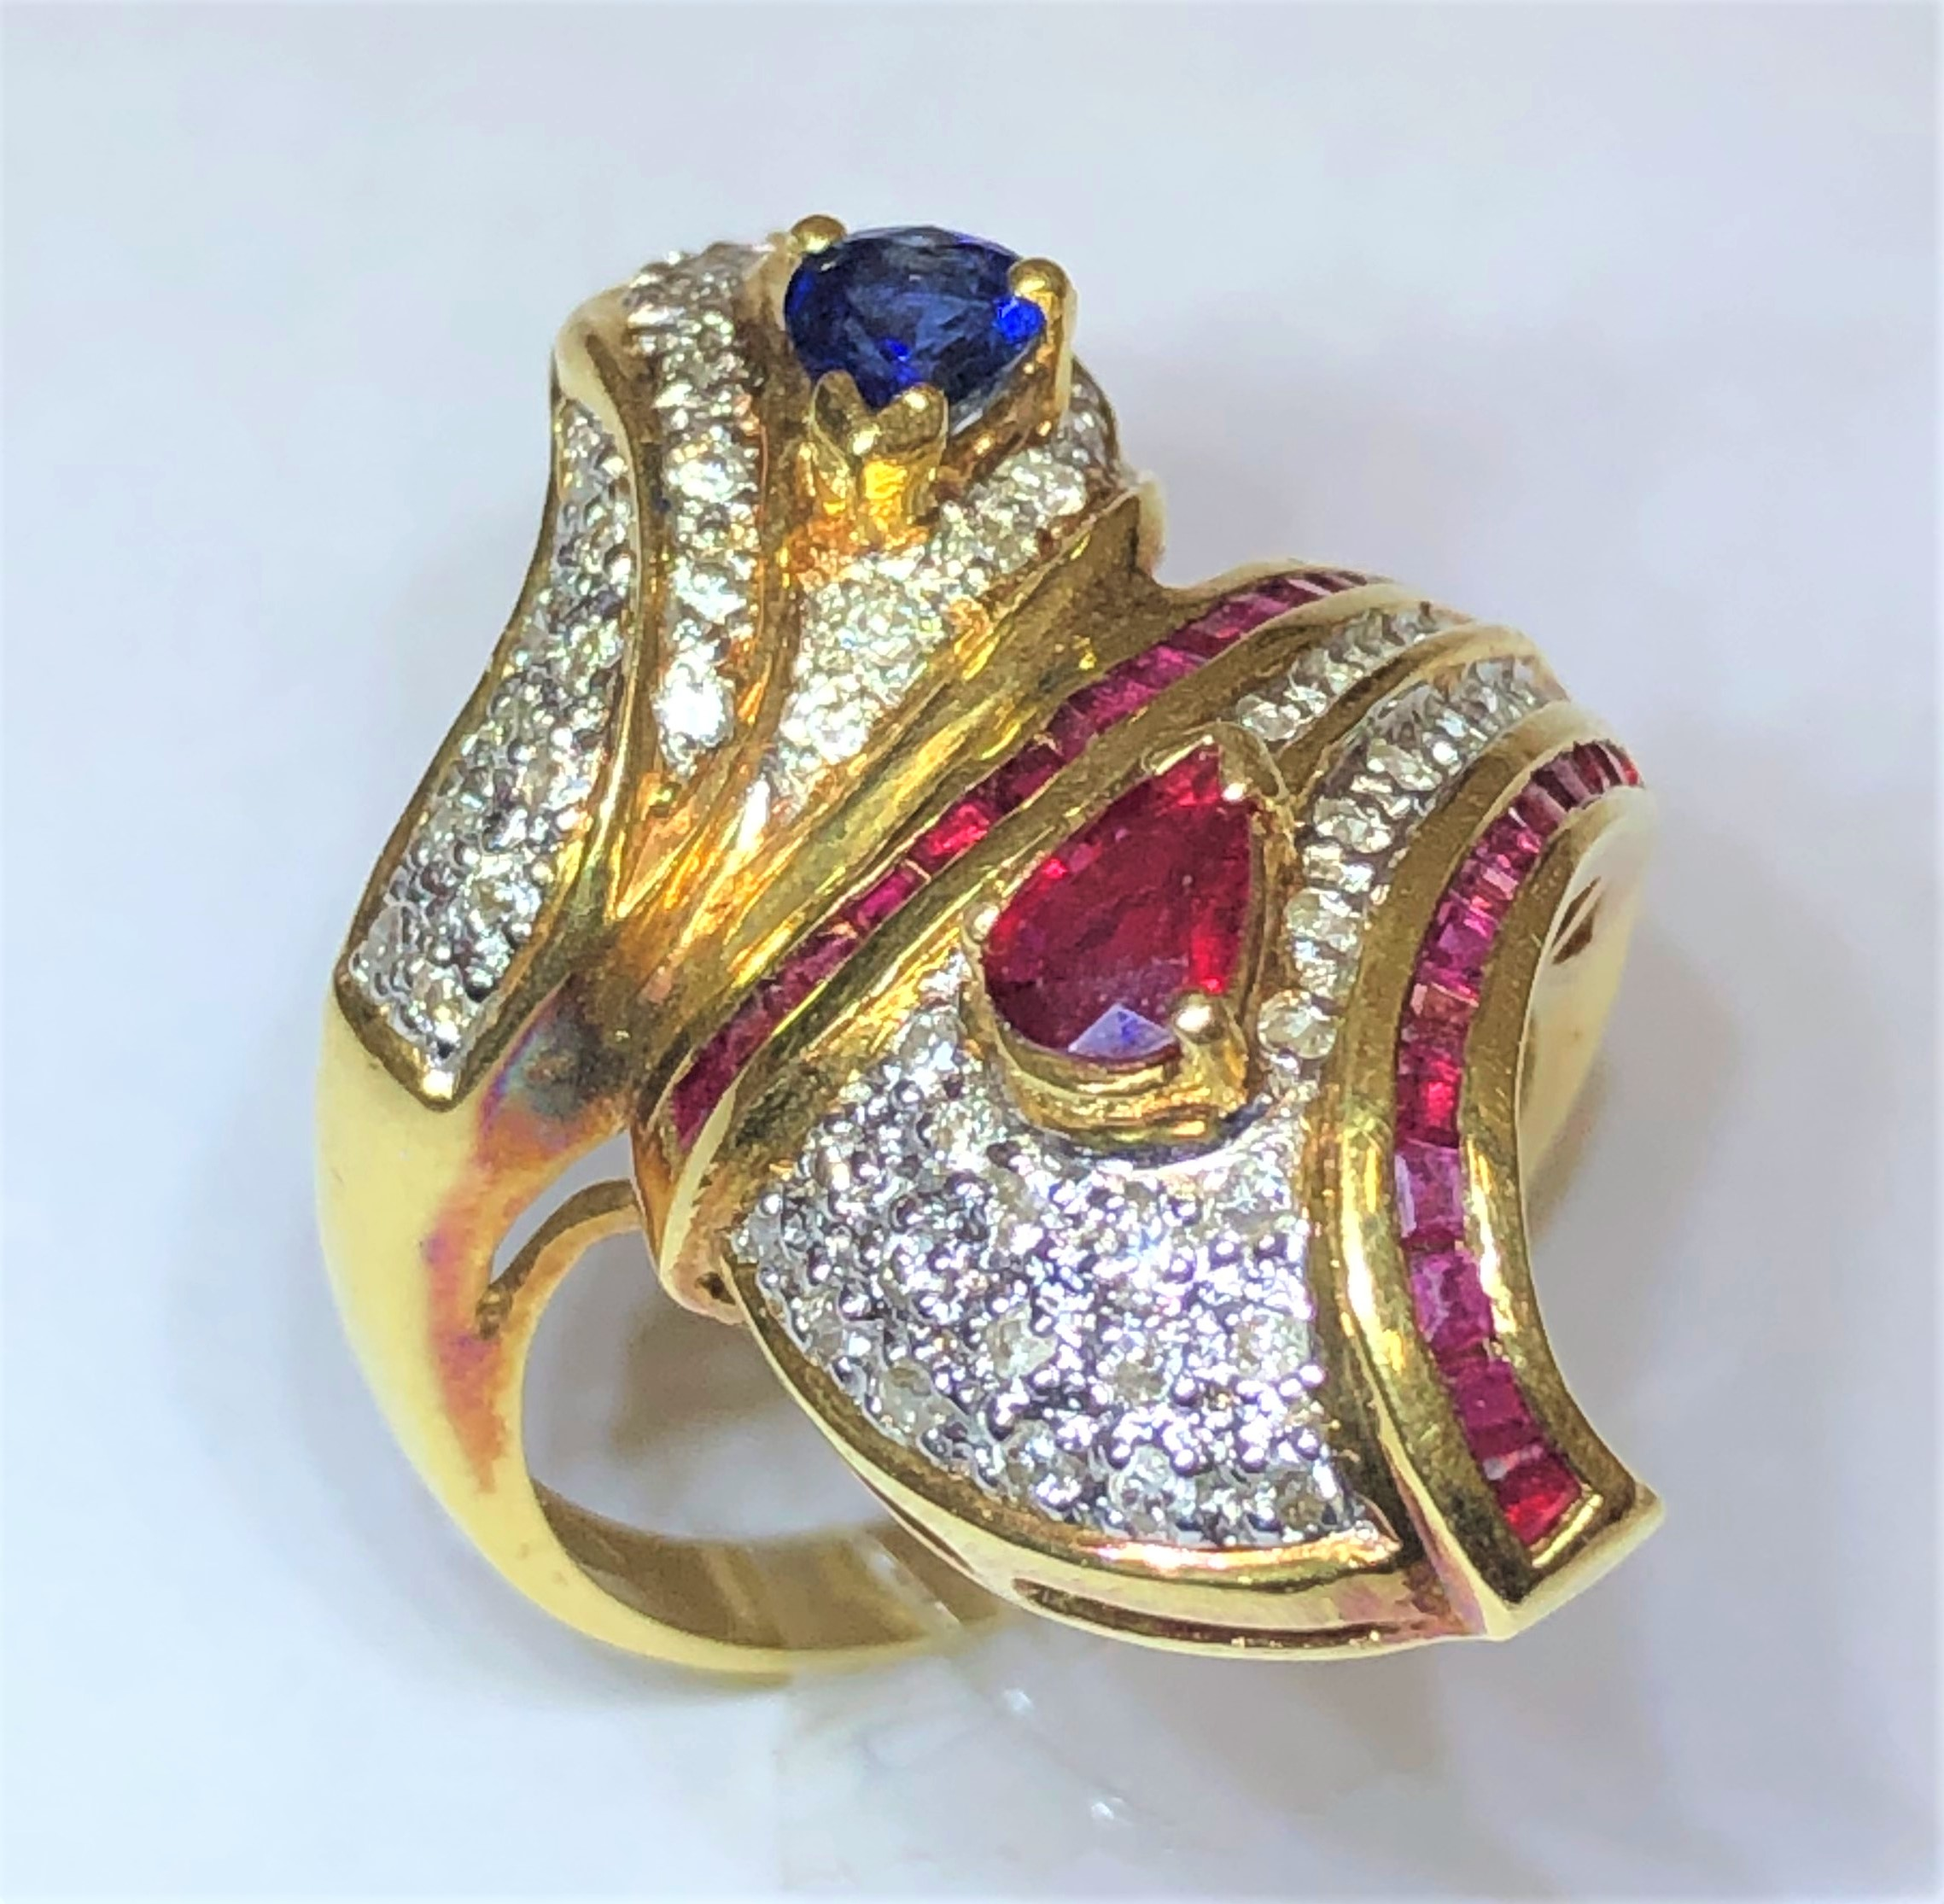 K18 リング R0.33ct S0.42ct MD0.4ct R0.58ct